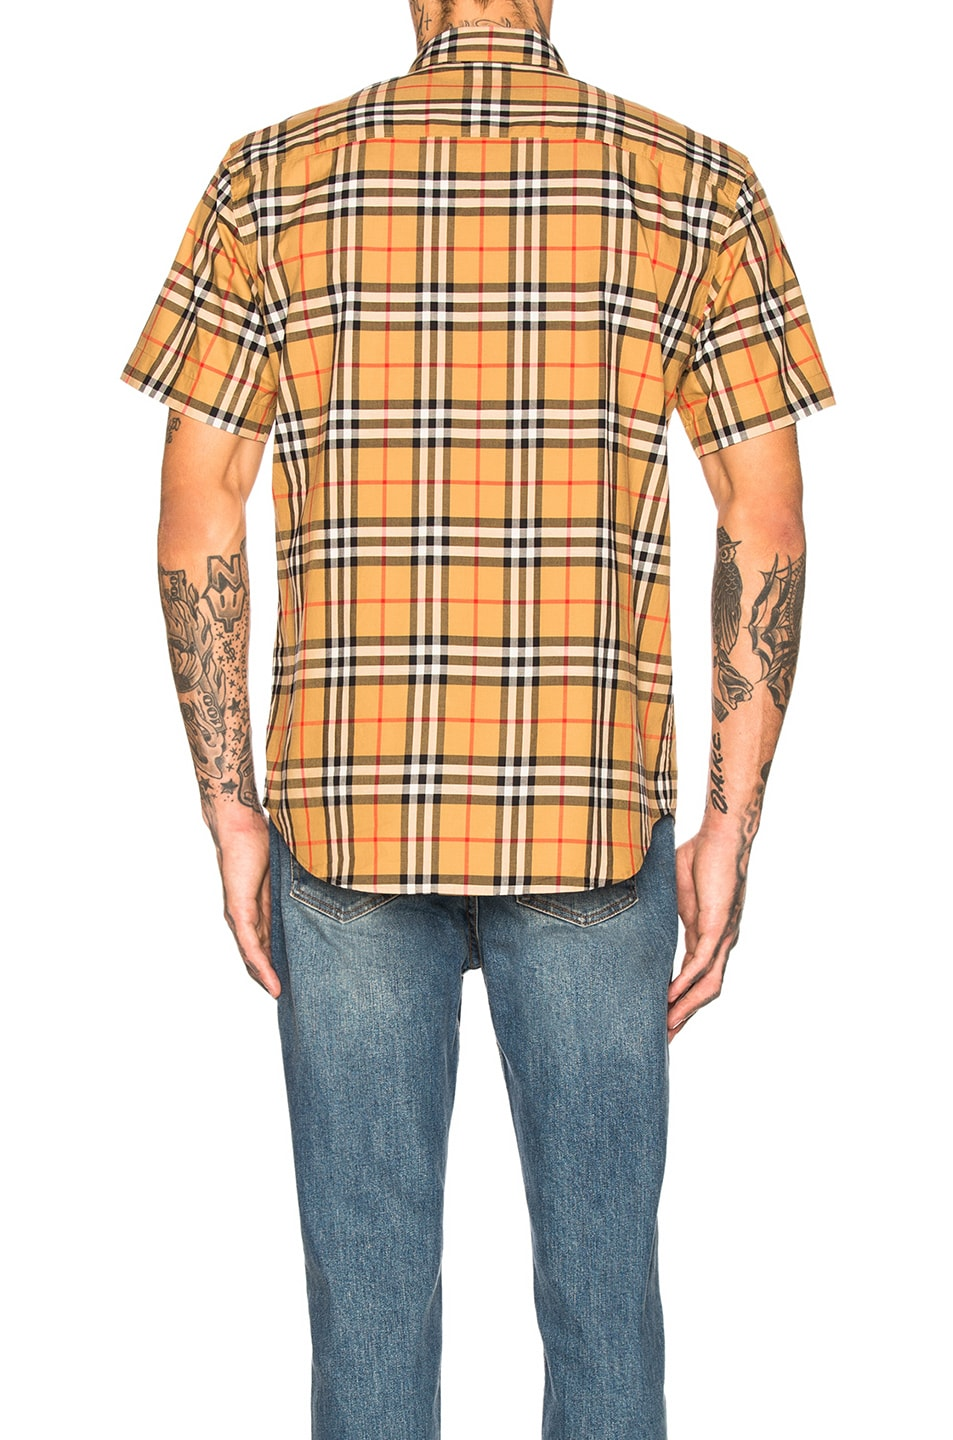 Image 3 of Burberry Vintage Check Shirt in Antique Yellow Check